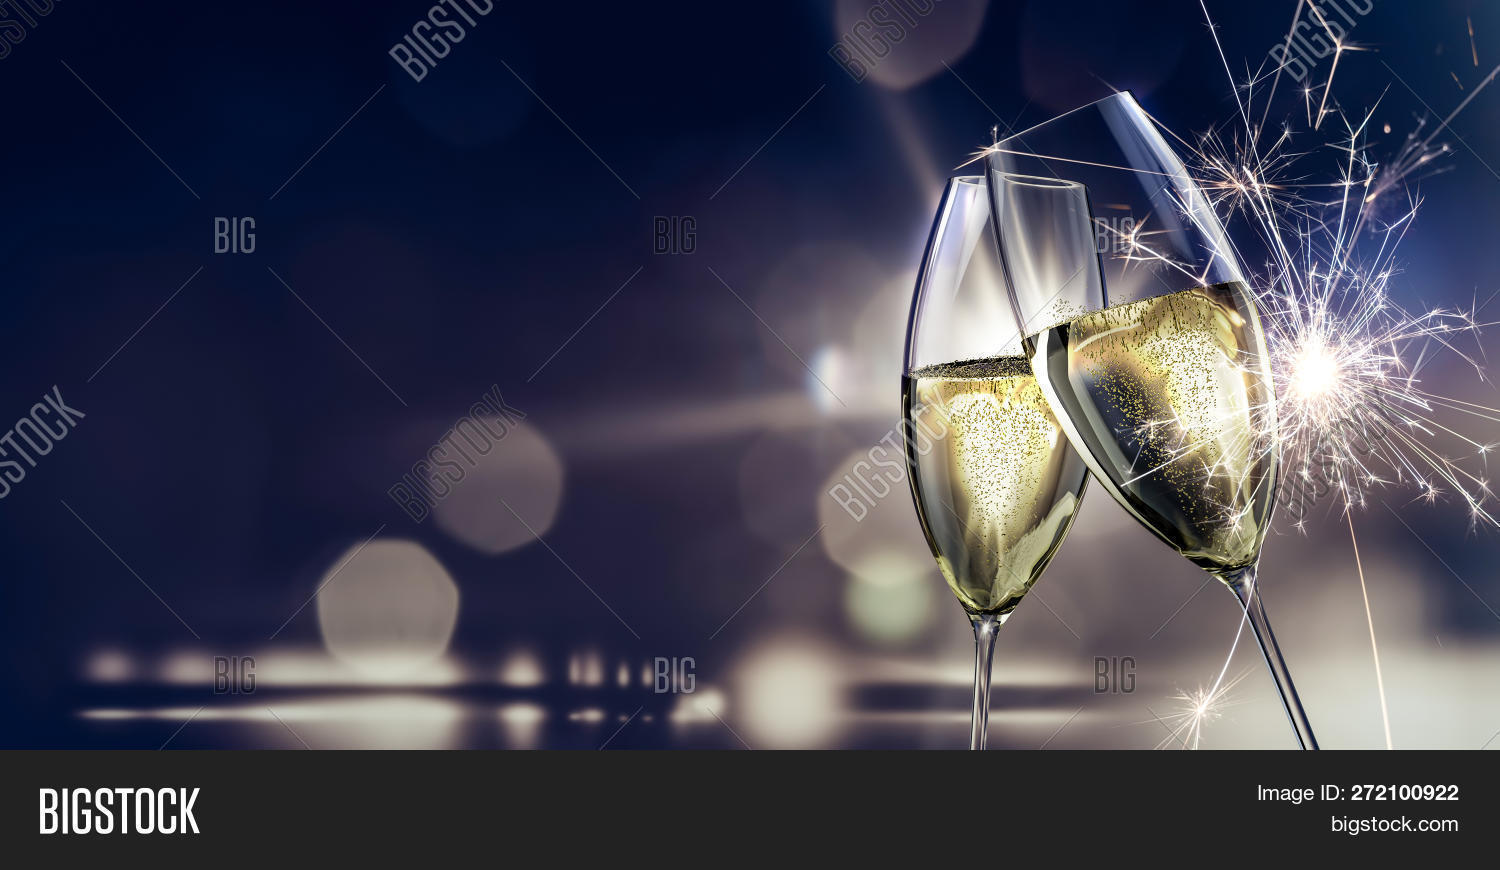 3d,alcohol,anniversary,background,beverage,birthday,bokeh,bright,bubbly,celebrate,celebration,champagne,cheers,christmas,concept,congratulations,copy,dark,decoration,drink,eve,festive,fireworks,gala,glass,glasses,gold,happy,holiday,illustration,jubilee,life,light,luxury,new,night,nobody,party,rendering,romantic,shining,space,sparkle,sparkler,tingling,toast,wedding,wine,year,years